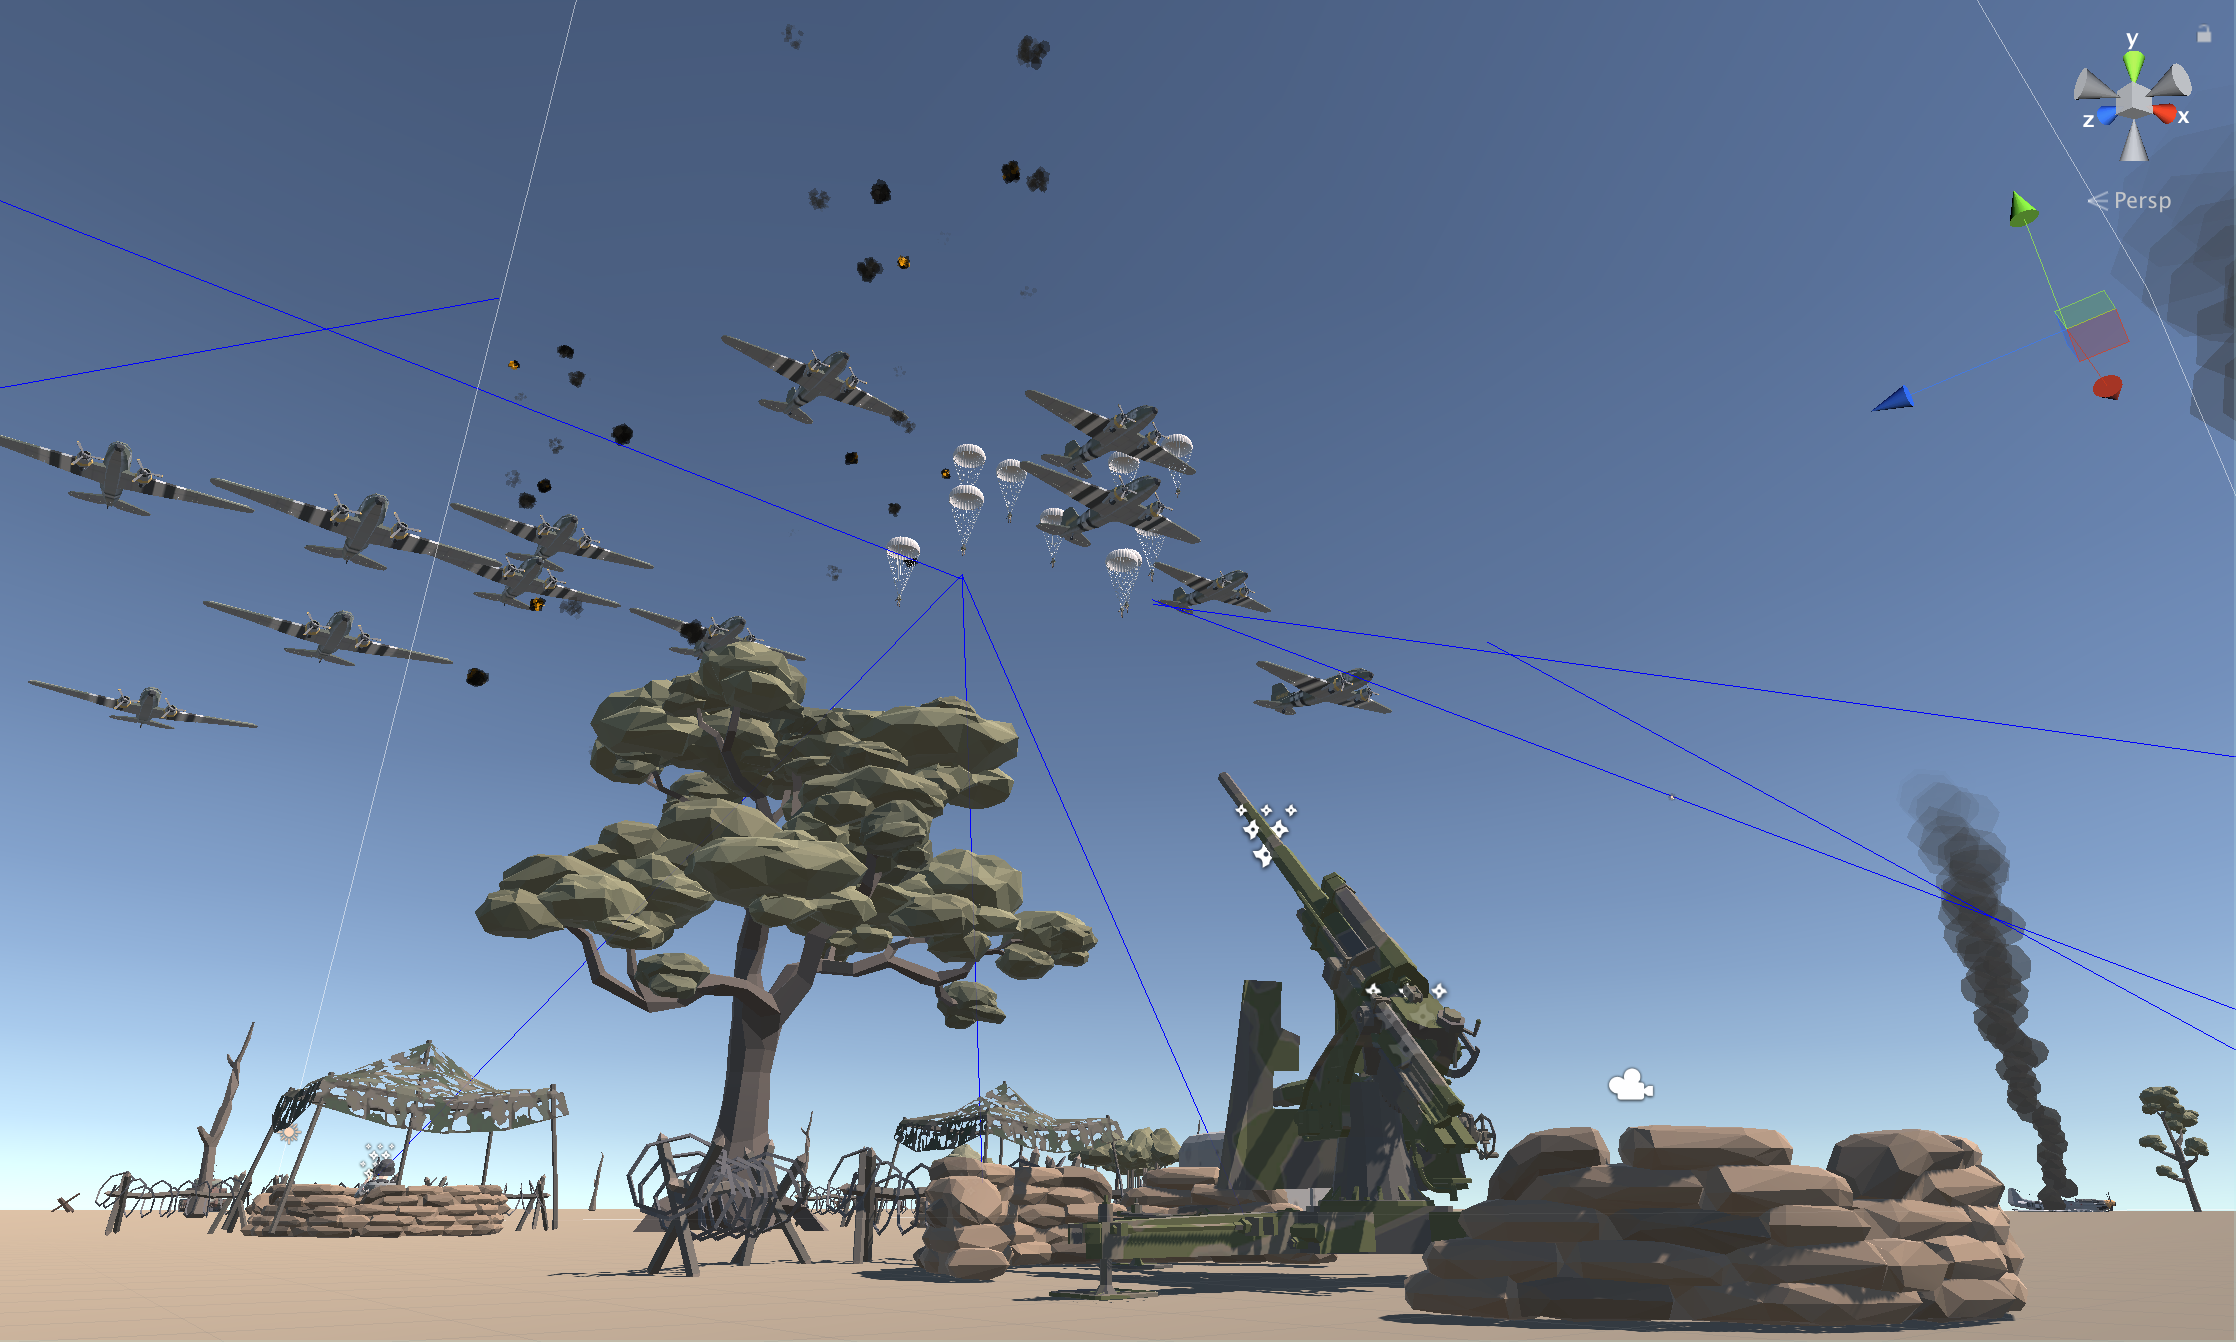 Simple intercept missile & turret behaviour  demo with Polygon War Asset